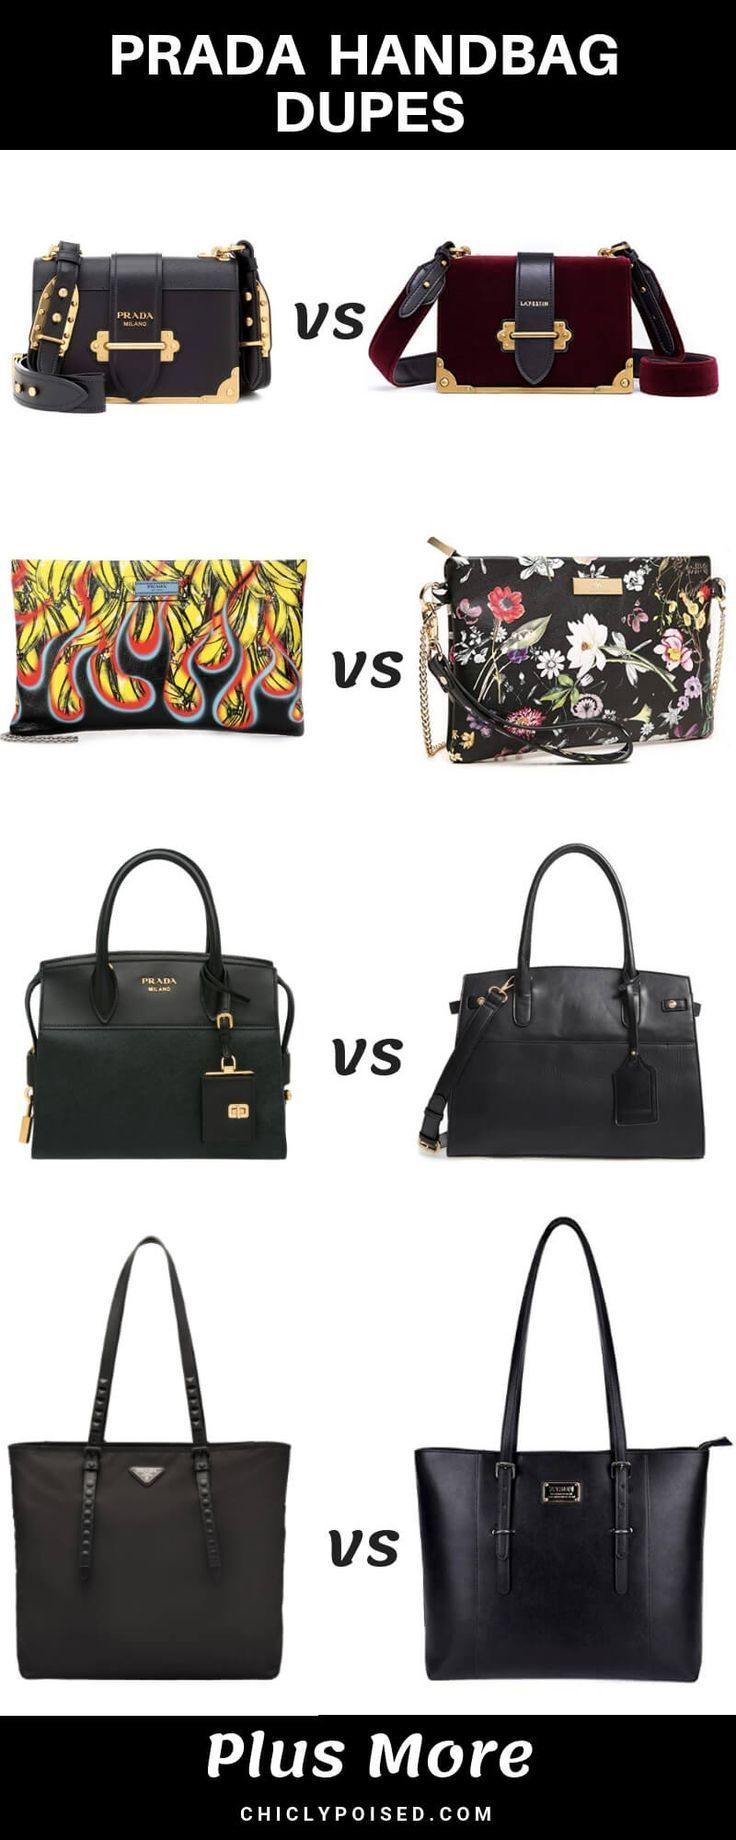 23e05fd8 These Prada bag dupes will have you slaying and saving! Everyone can ...